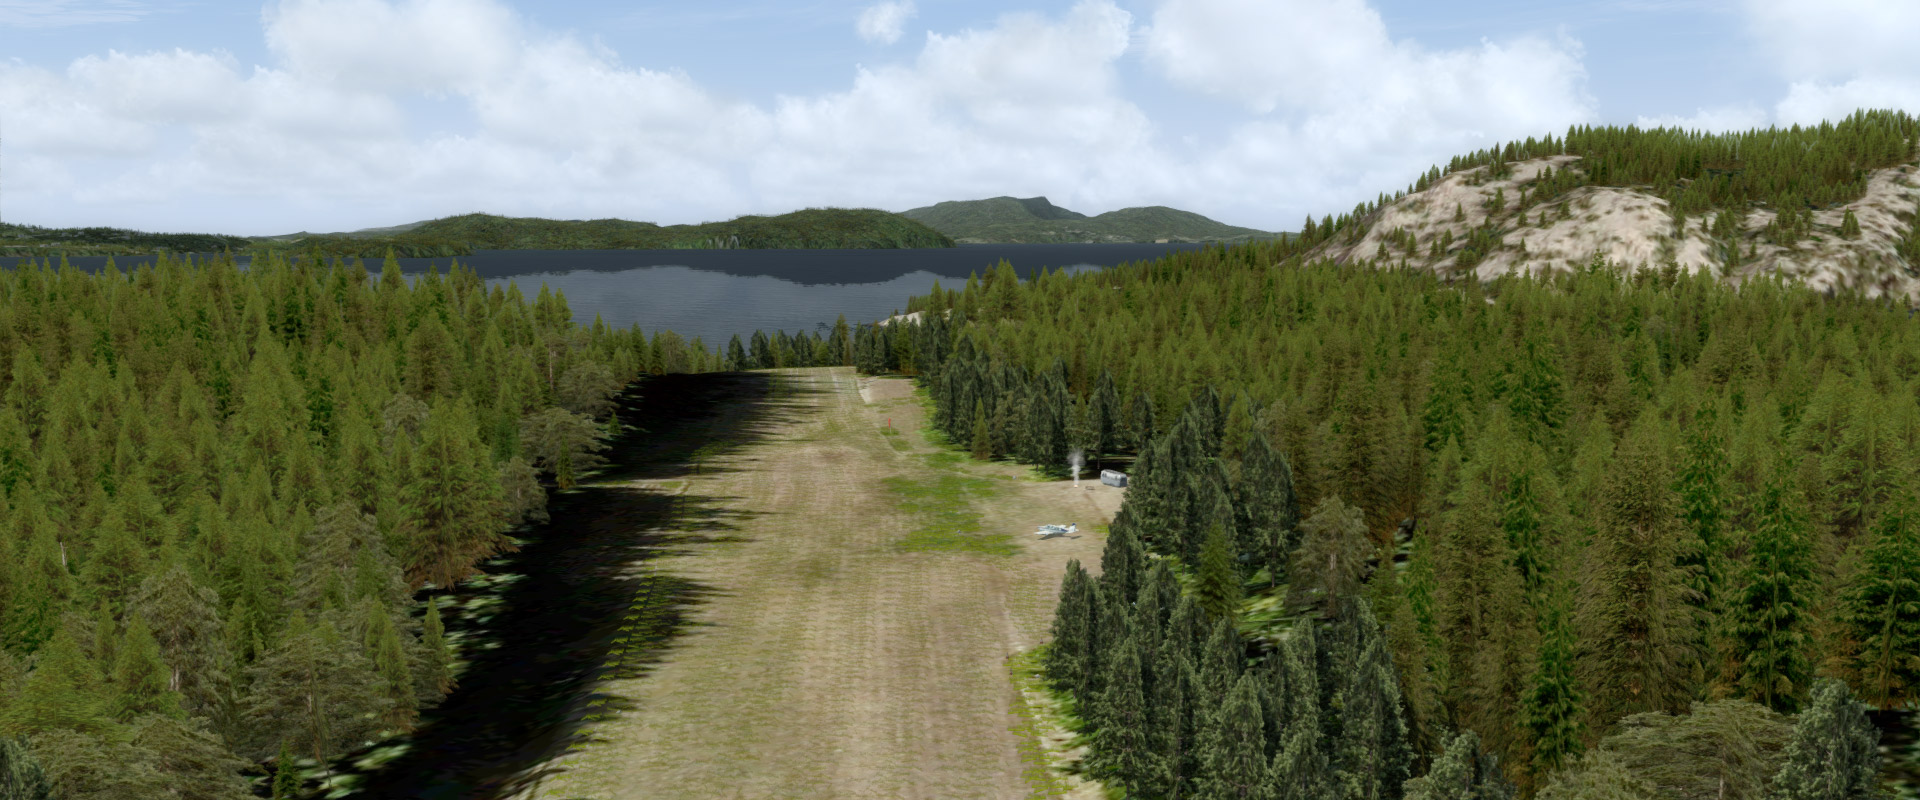 Allan Island v1.2 update for FSX and P3D